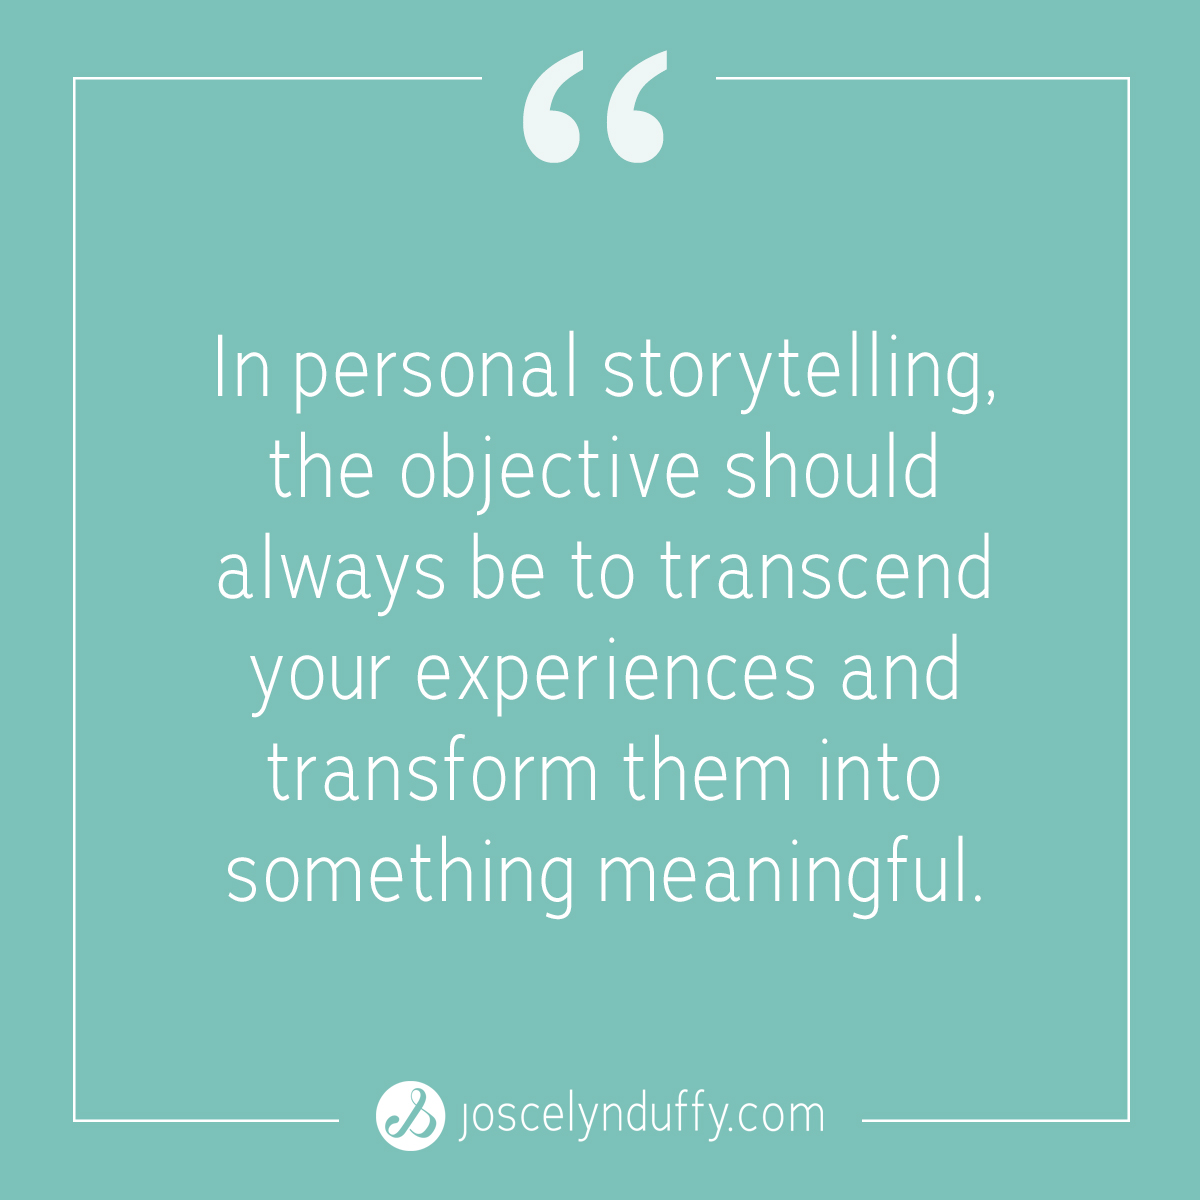 Joscelyn Duffy_quote_Transcend your experiences and transform them into something meaningful_Mar21